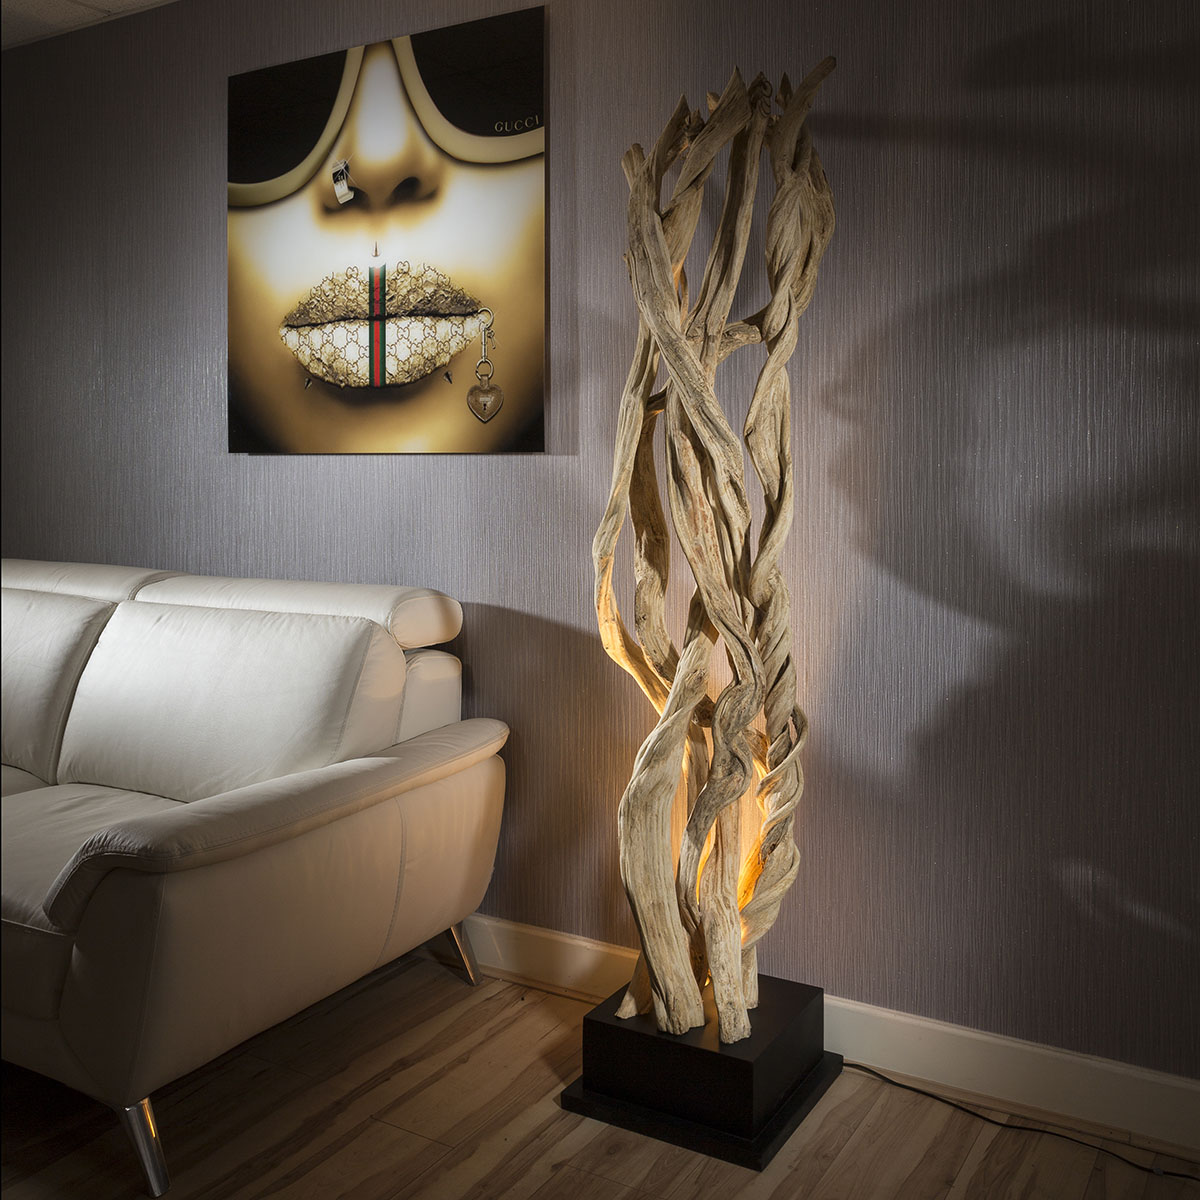 floor attractive with glasess lamp of lamps presenting artistic photos design driftwood lighting ideas